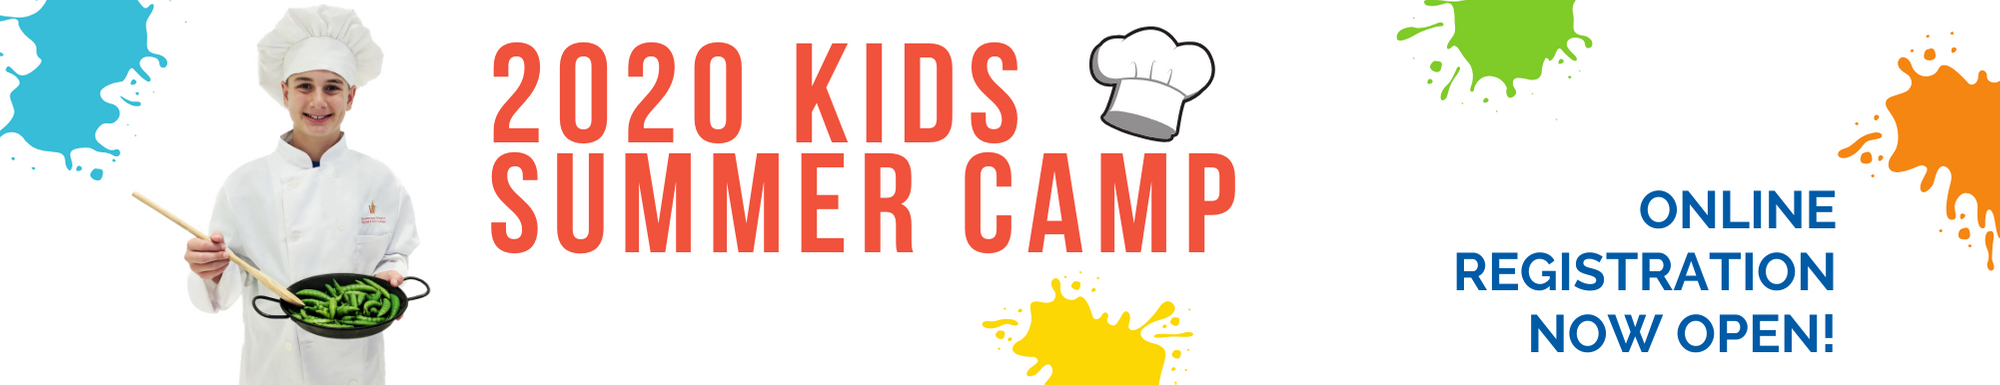 summer-camp-registration-banner-2-.png